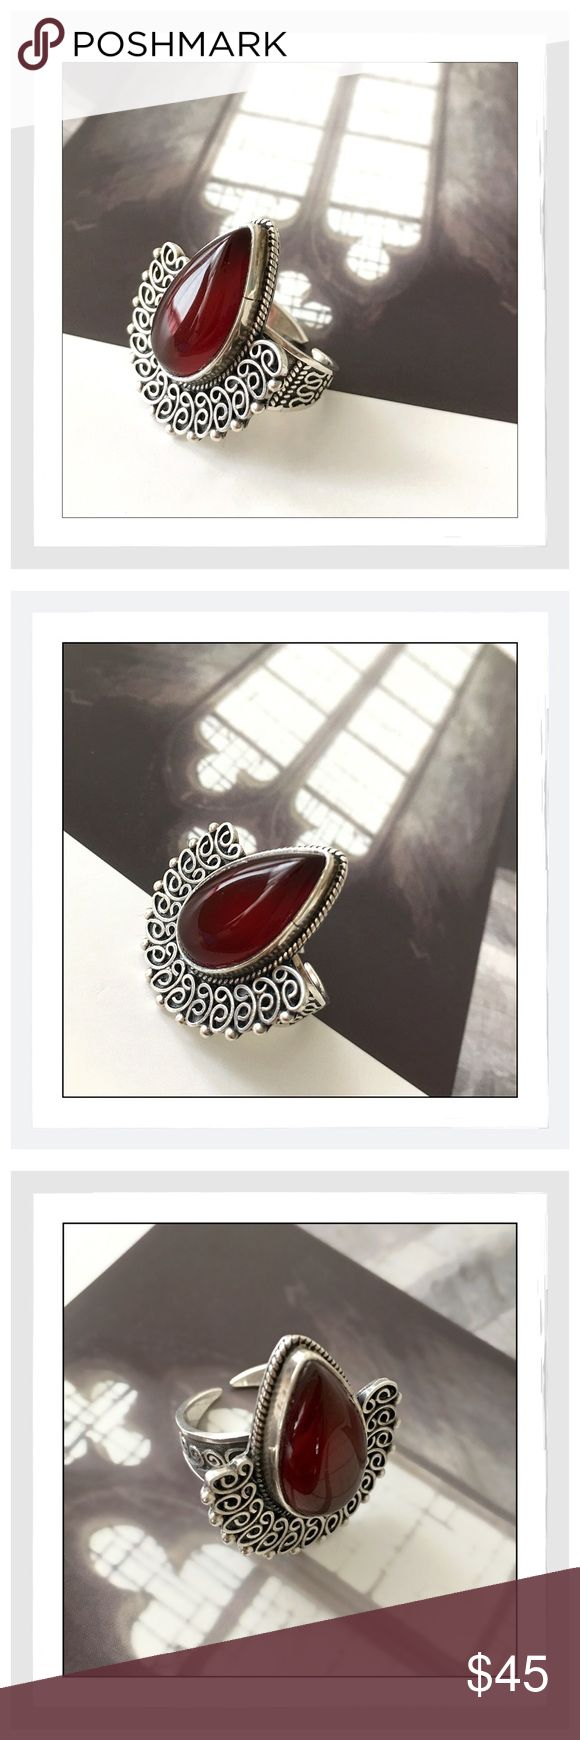 ✨Vintage Sterling Silver Blood Red Carnelian Ring✨ Beautiful, Bold Sterling Silver Vintage Large Carnelian Ring✨Approx 8.5 Ring Size✨Gorgeous Silver Detailing Design✨ Carnelian is a stabilizing crystal✨Its high energy helps restore lost vitality and motivation, and stimulates creativity for new pursuits✨Carnelian may help in rekindling passions that might have faded in an otherwise loving relationship✨Carnelian clarifies the voice✨It is the Singer's Stone and promotes confidence for…